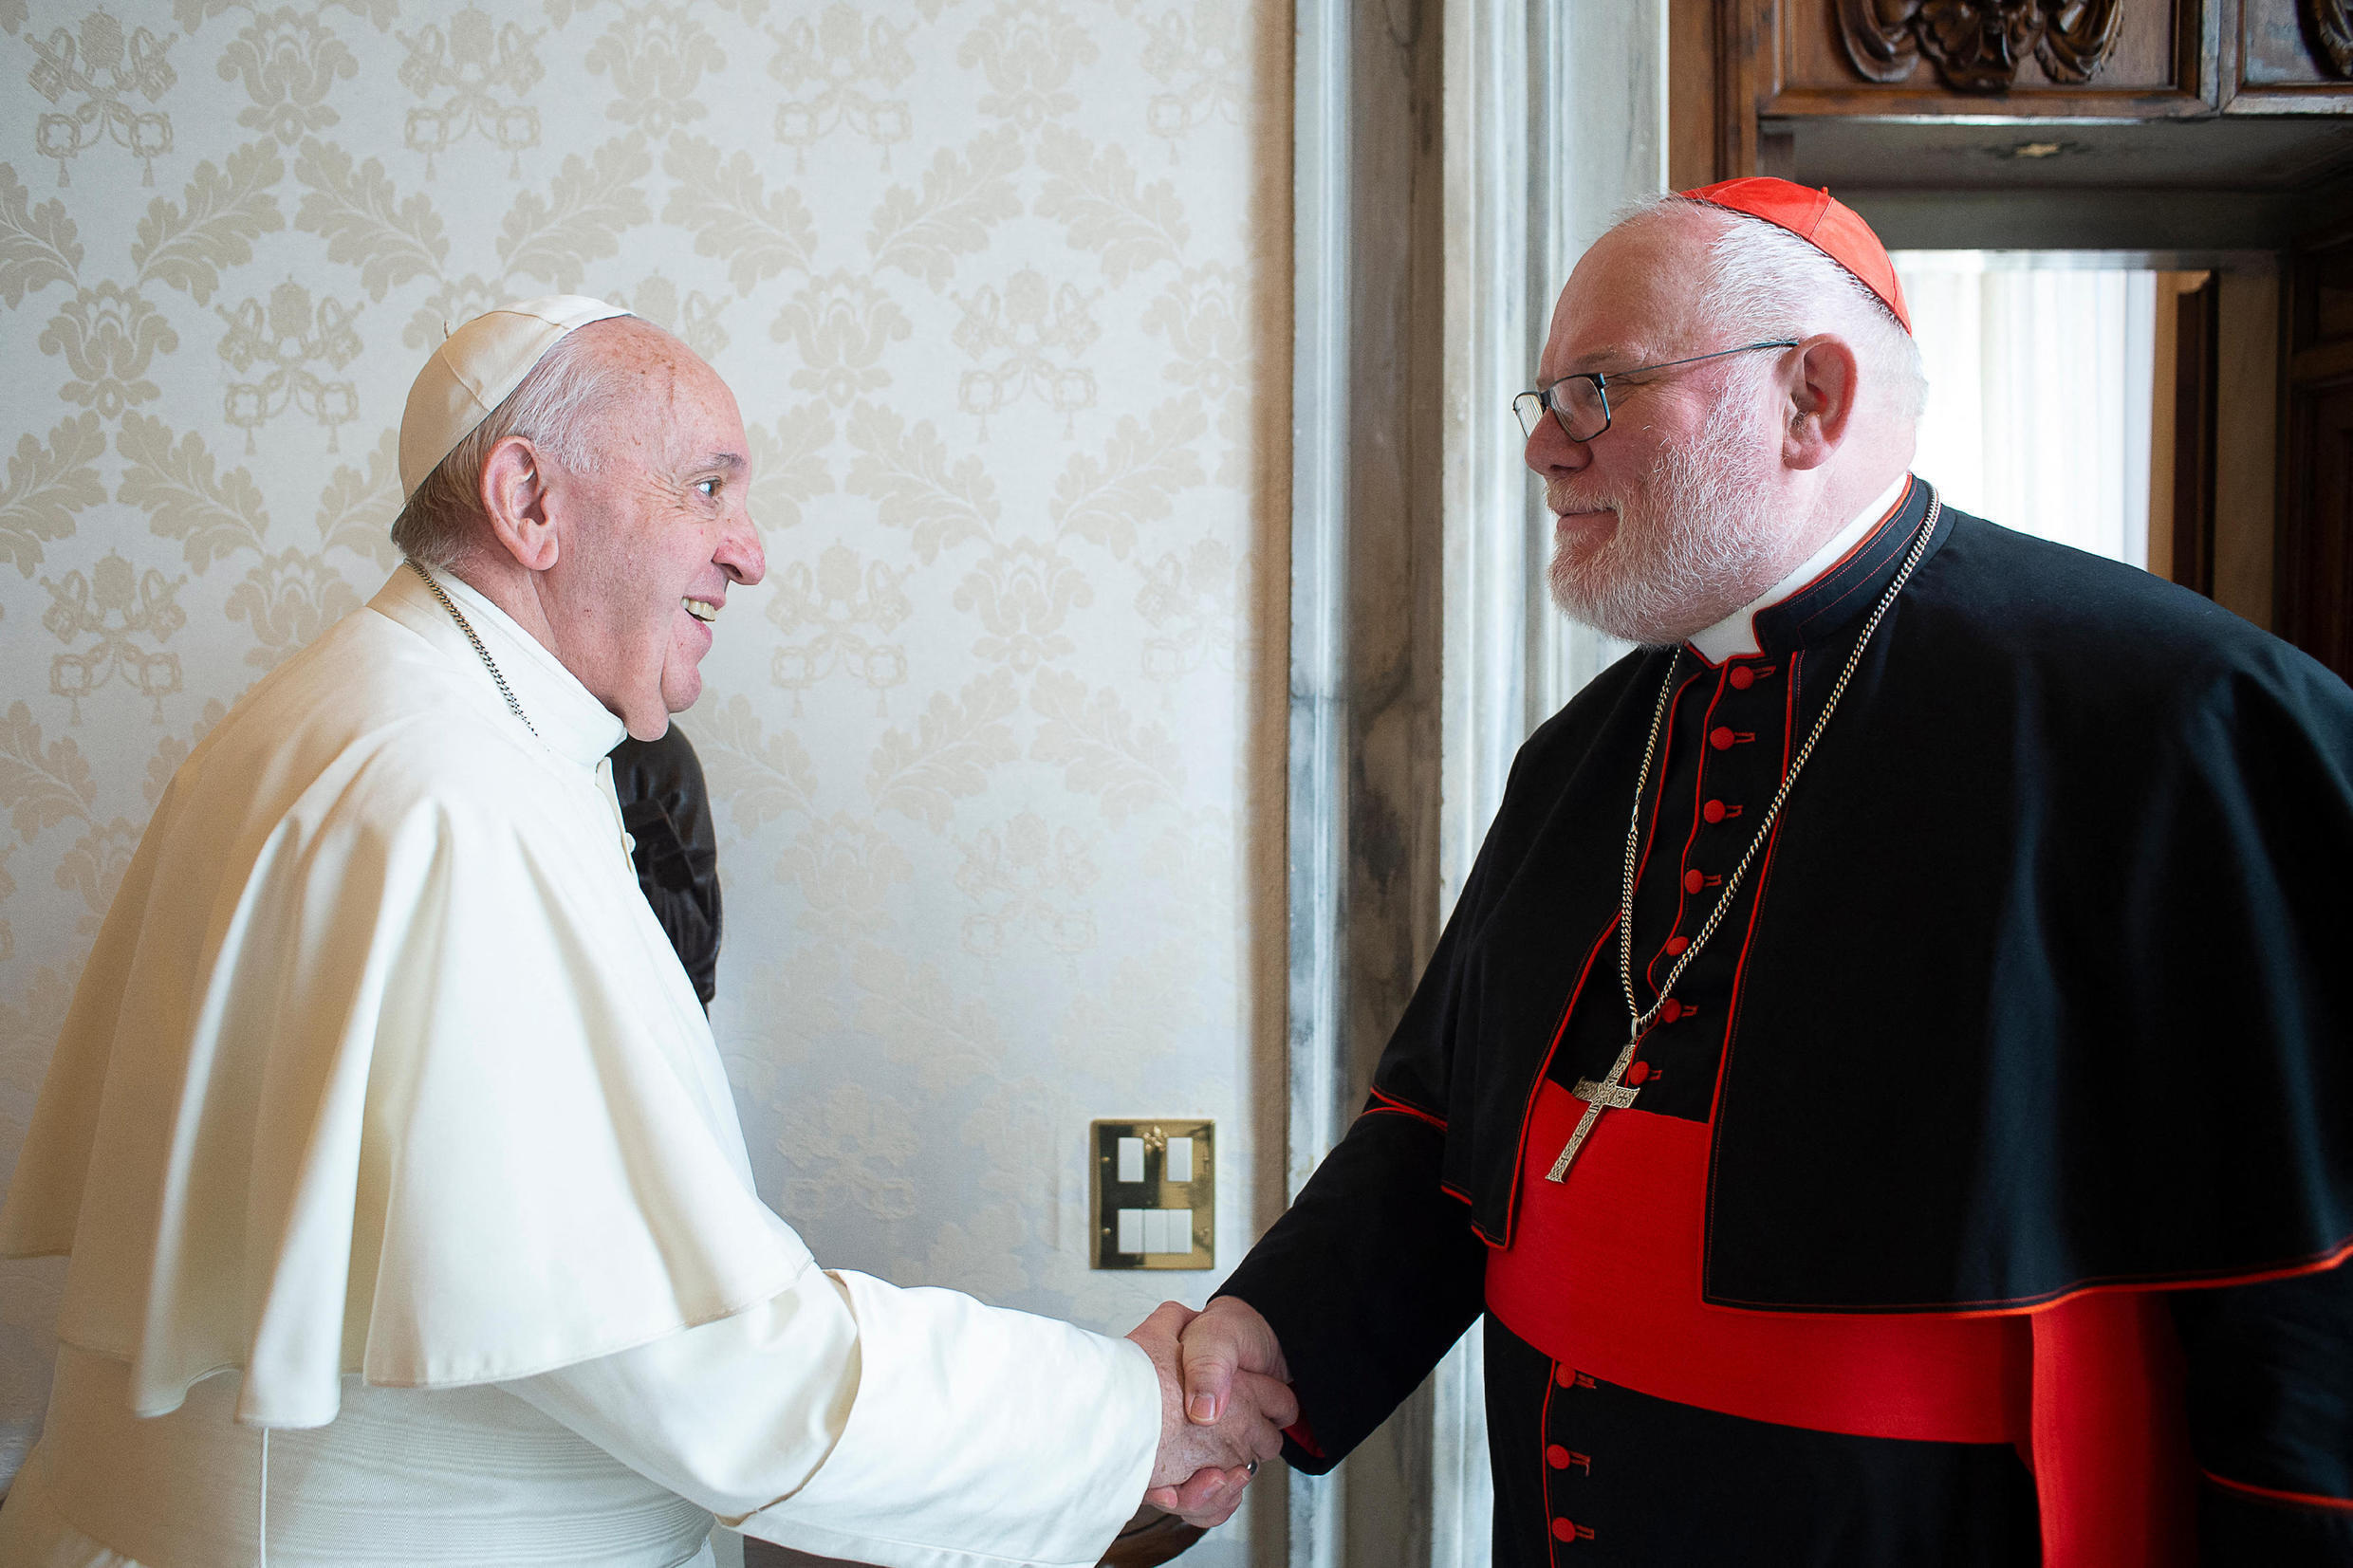 Pope Francis greeting the president of the German Bishops' Conference, the Archbishop of Munich and Freising, the German Cardinal Reinhard Marx during a private audience at the Vatican.  Photo taken and distributed on February 3, 2020 by the Vatican media